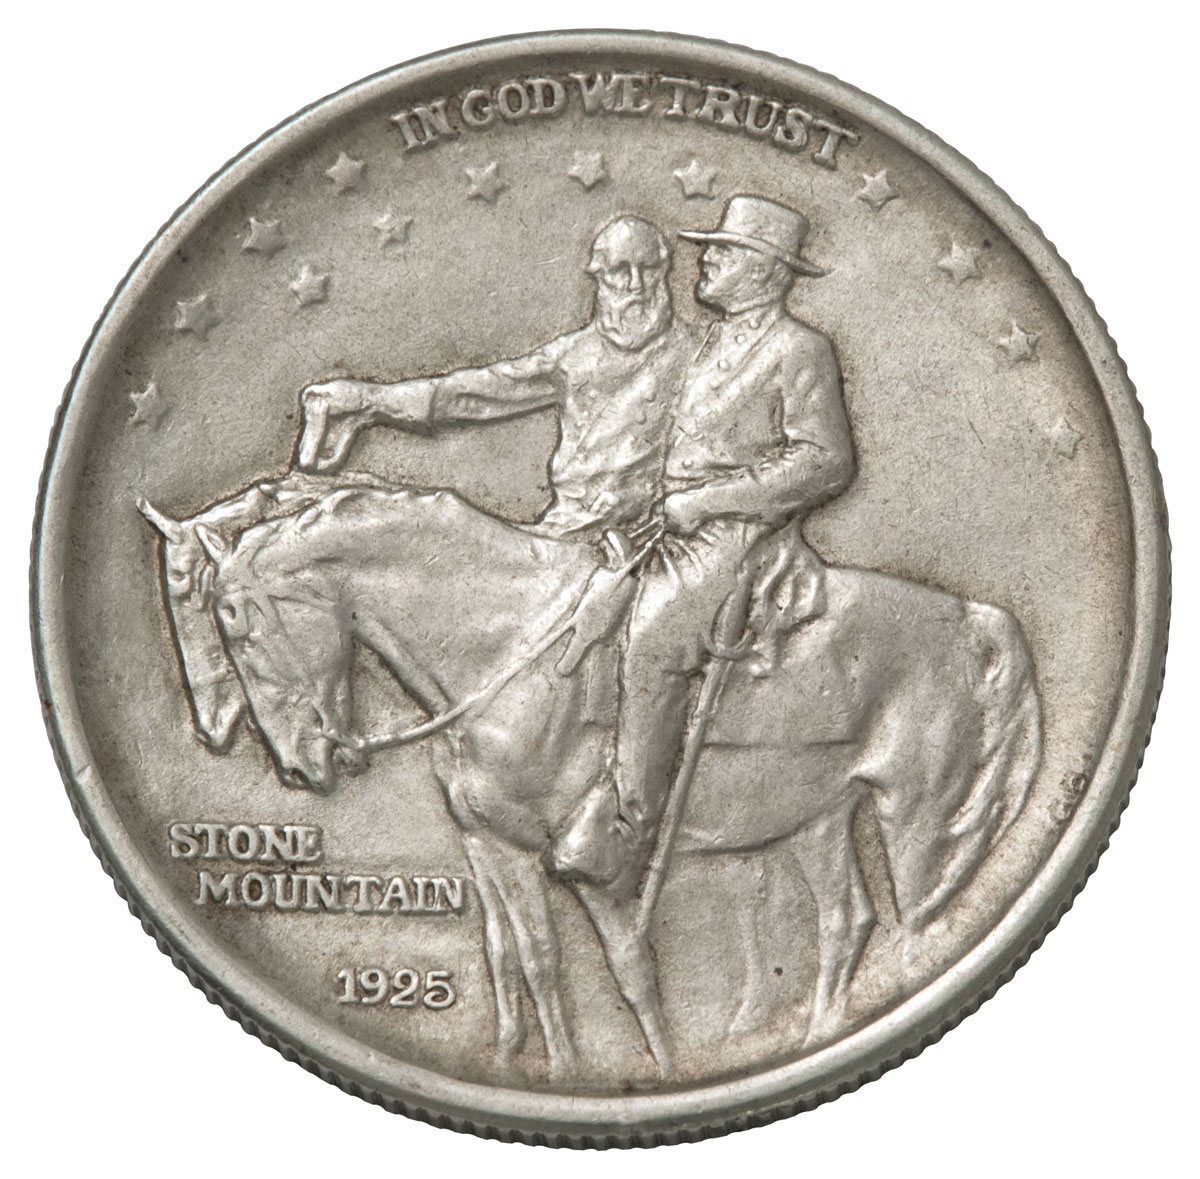 1925 Stone Mountain Memorial Commemorative Silver Half Dollar VF-XF